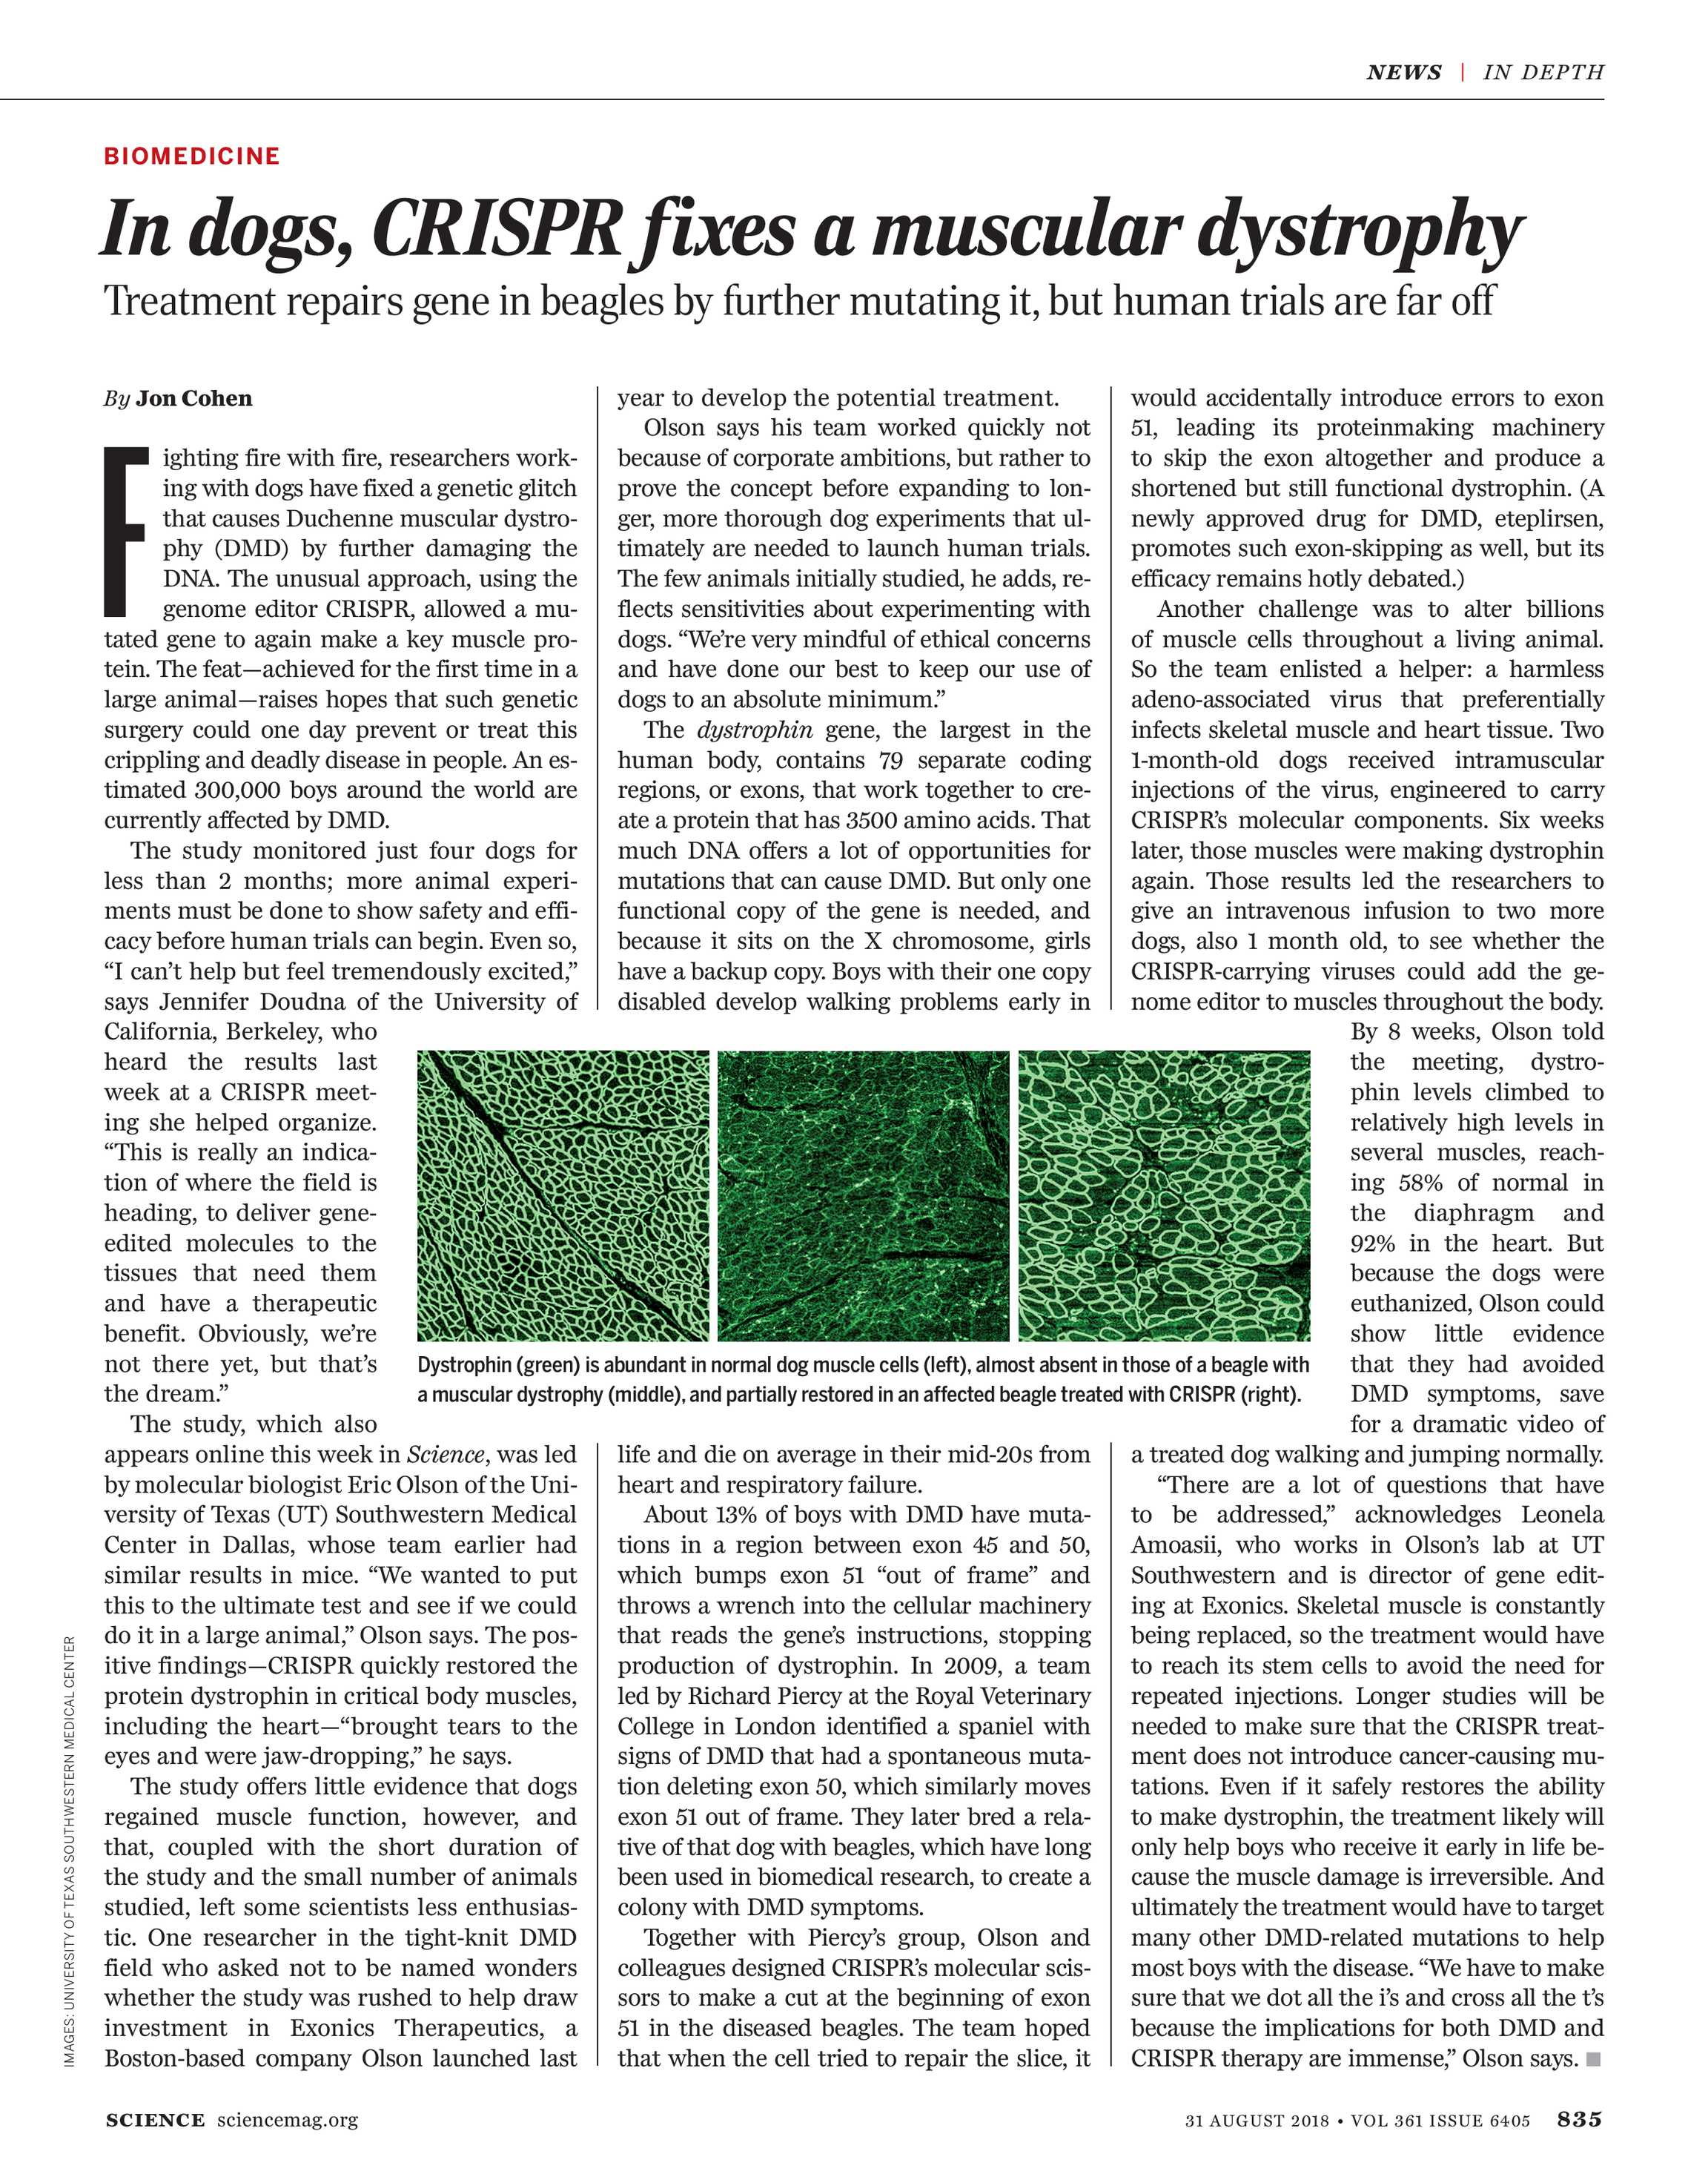 Duchenne Muscular Dystrophy Nih Science Magazine August 31 2018 Page 835